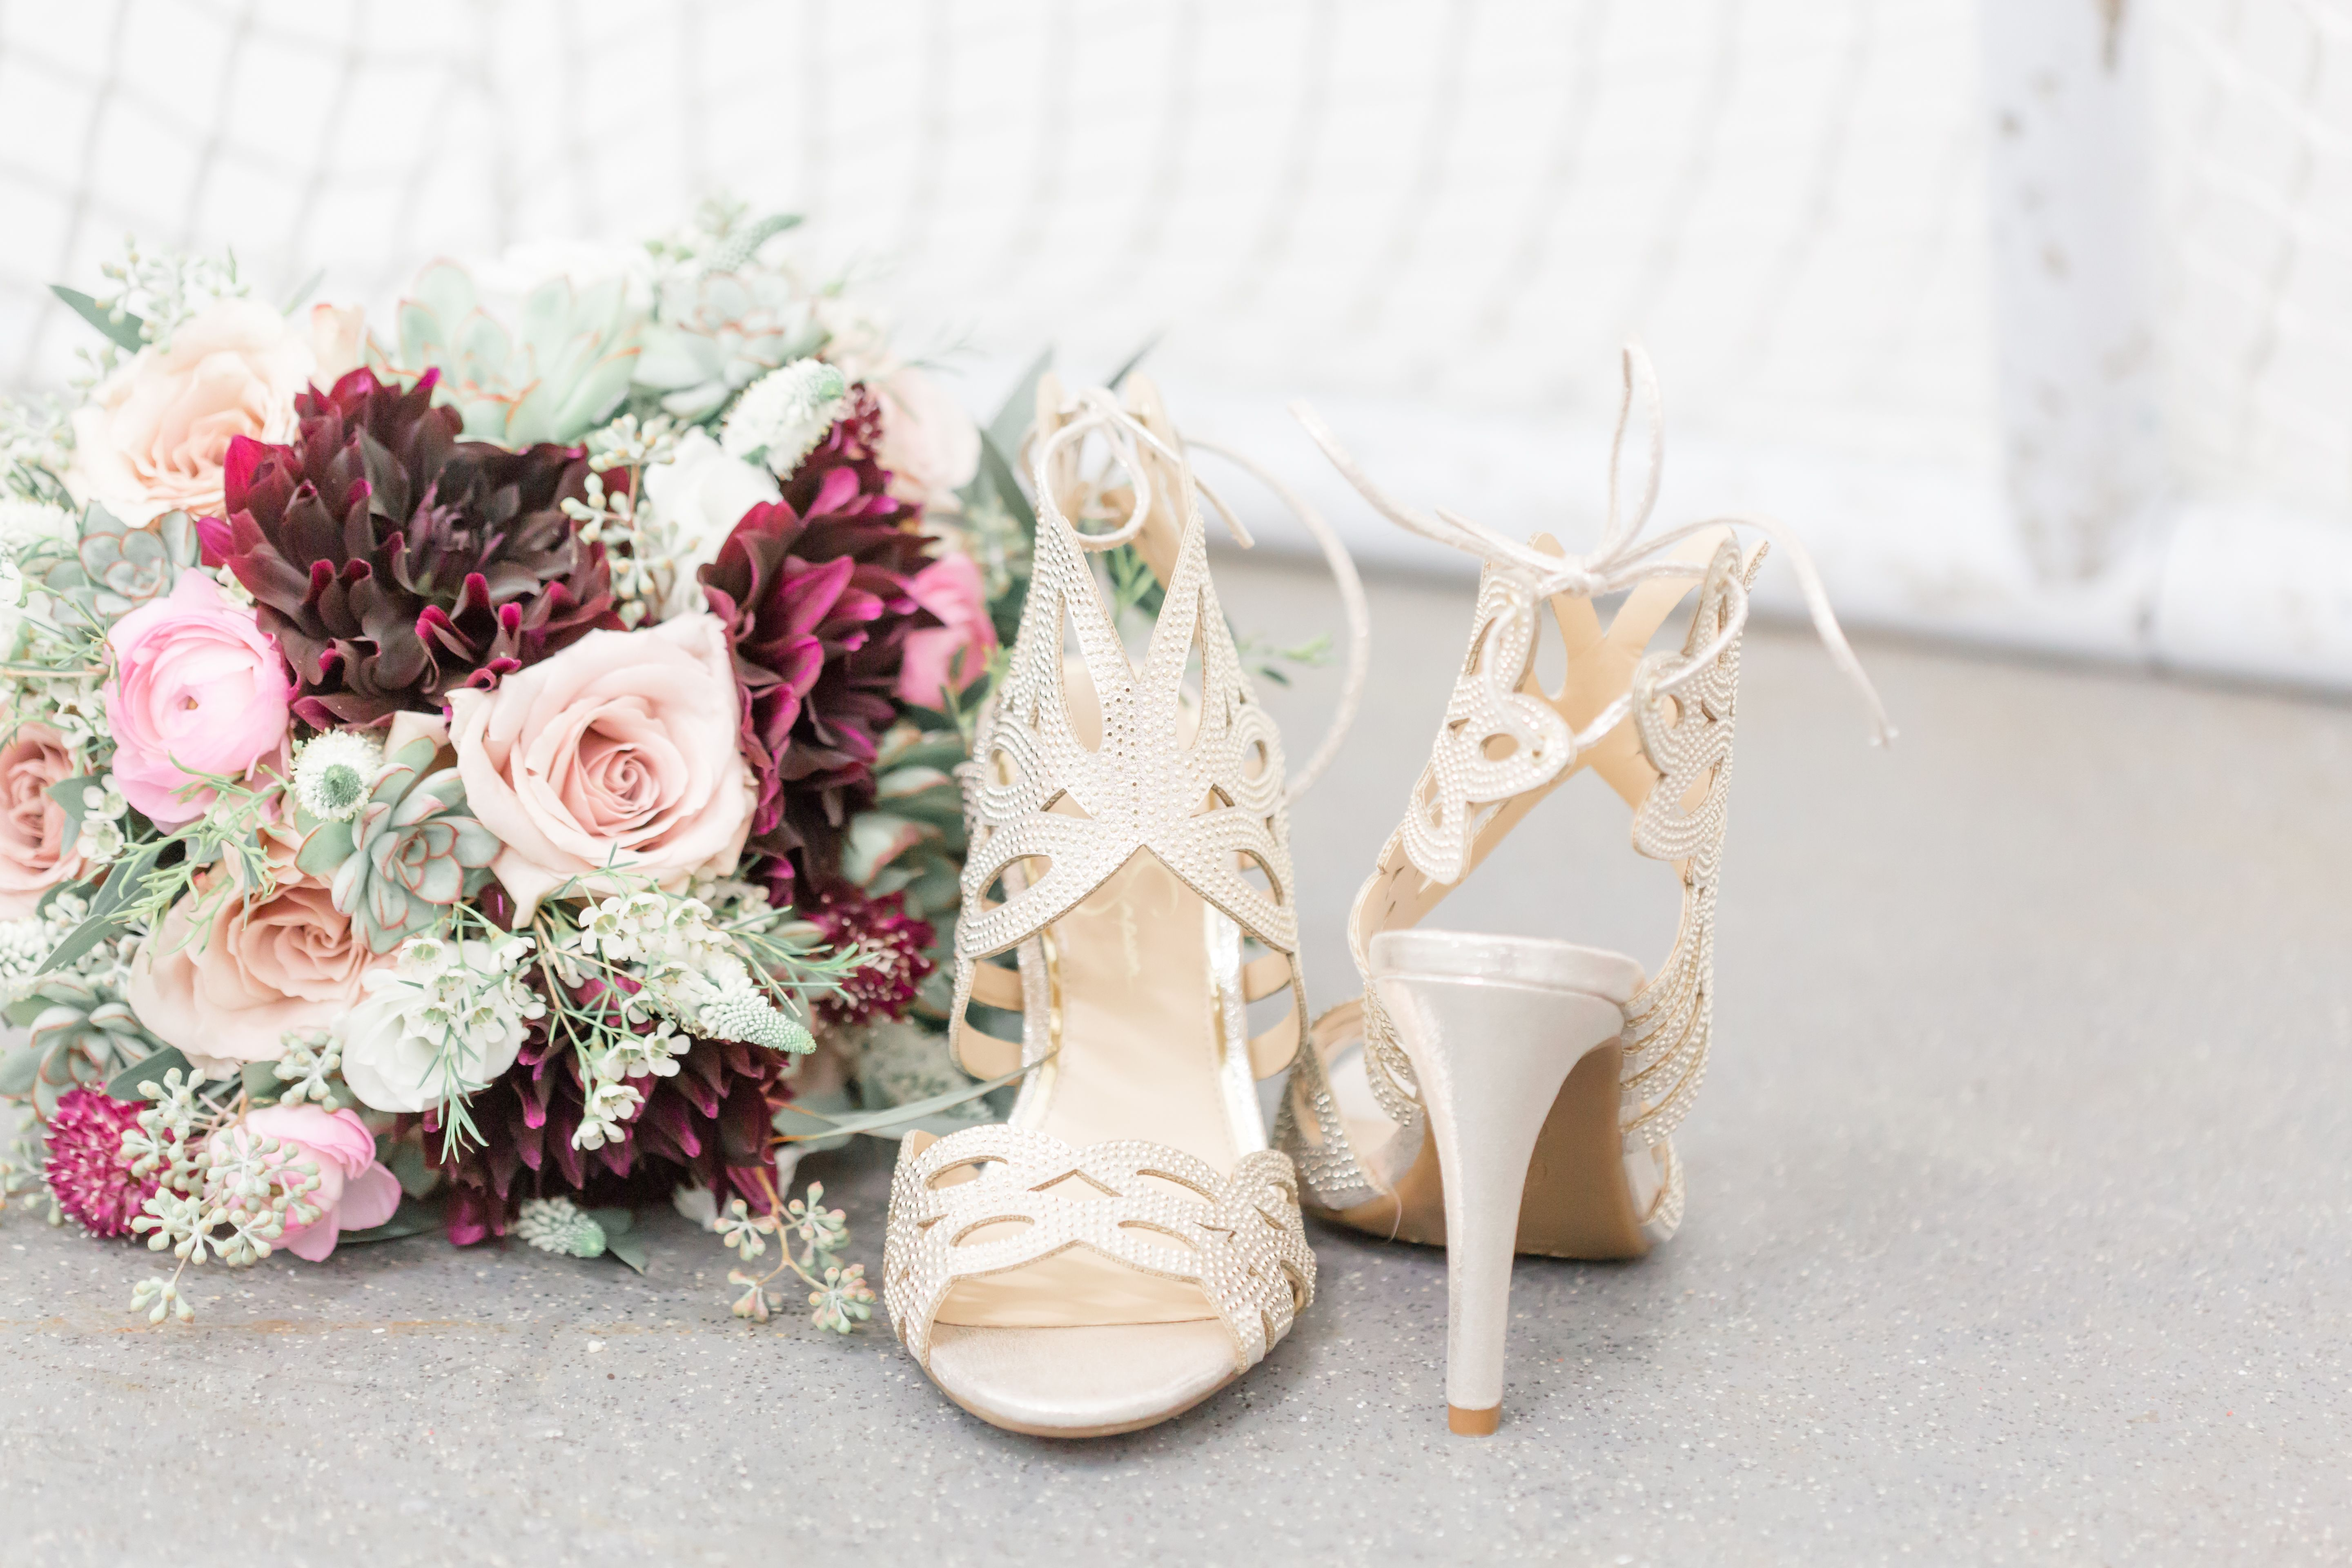 My bridal bouquet and heels with a hockey net backdrop ...